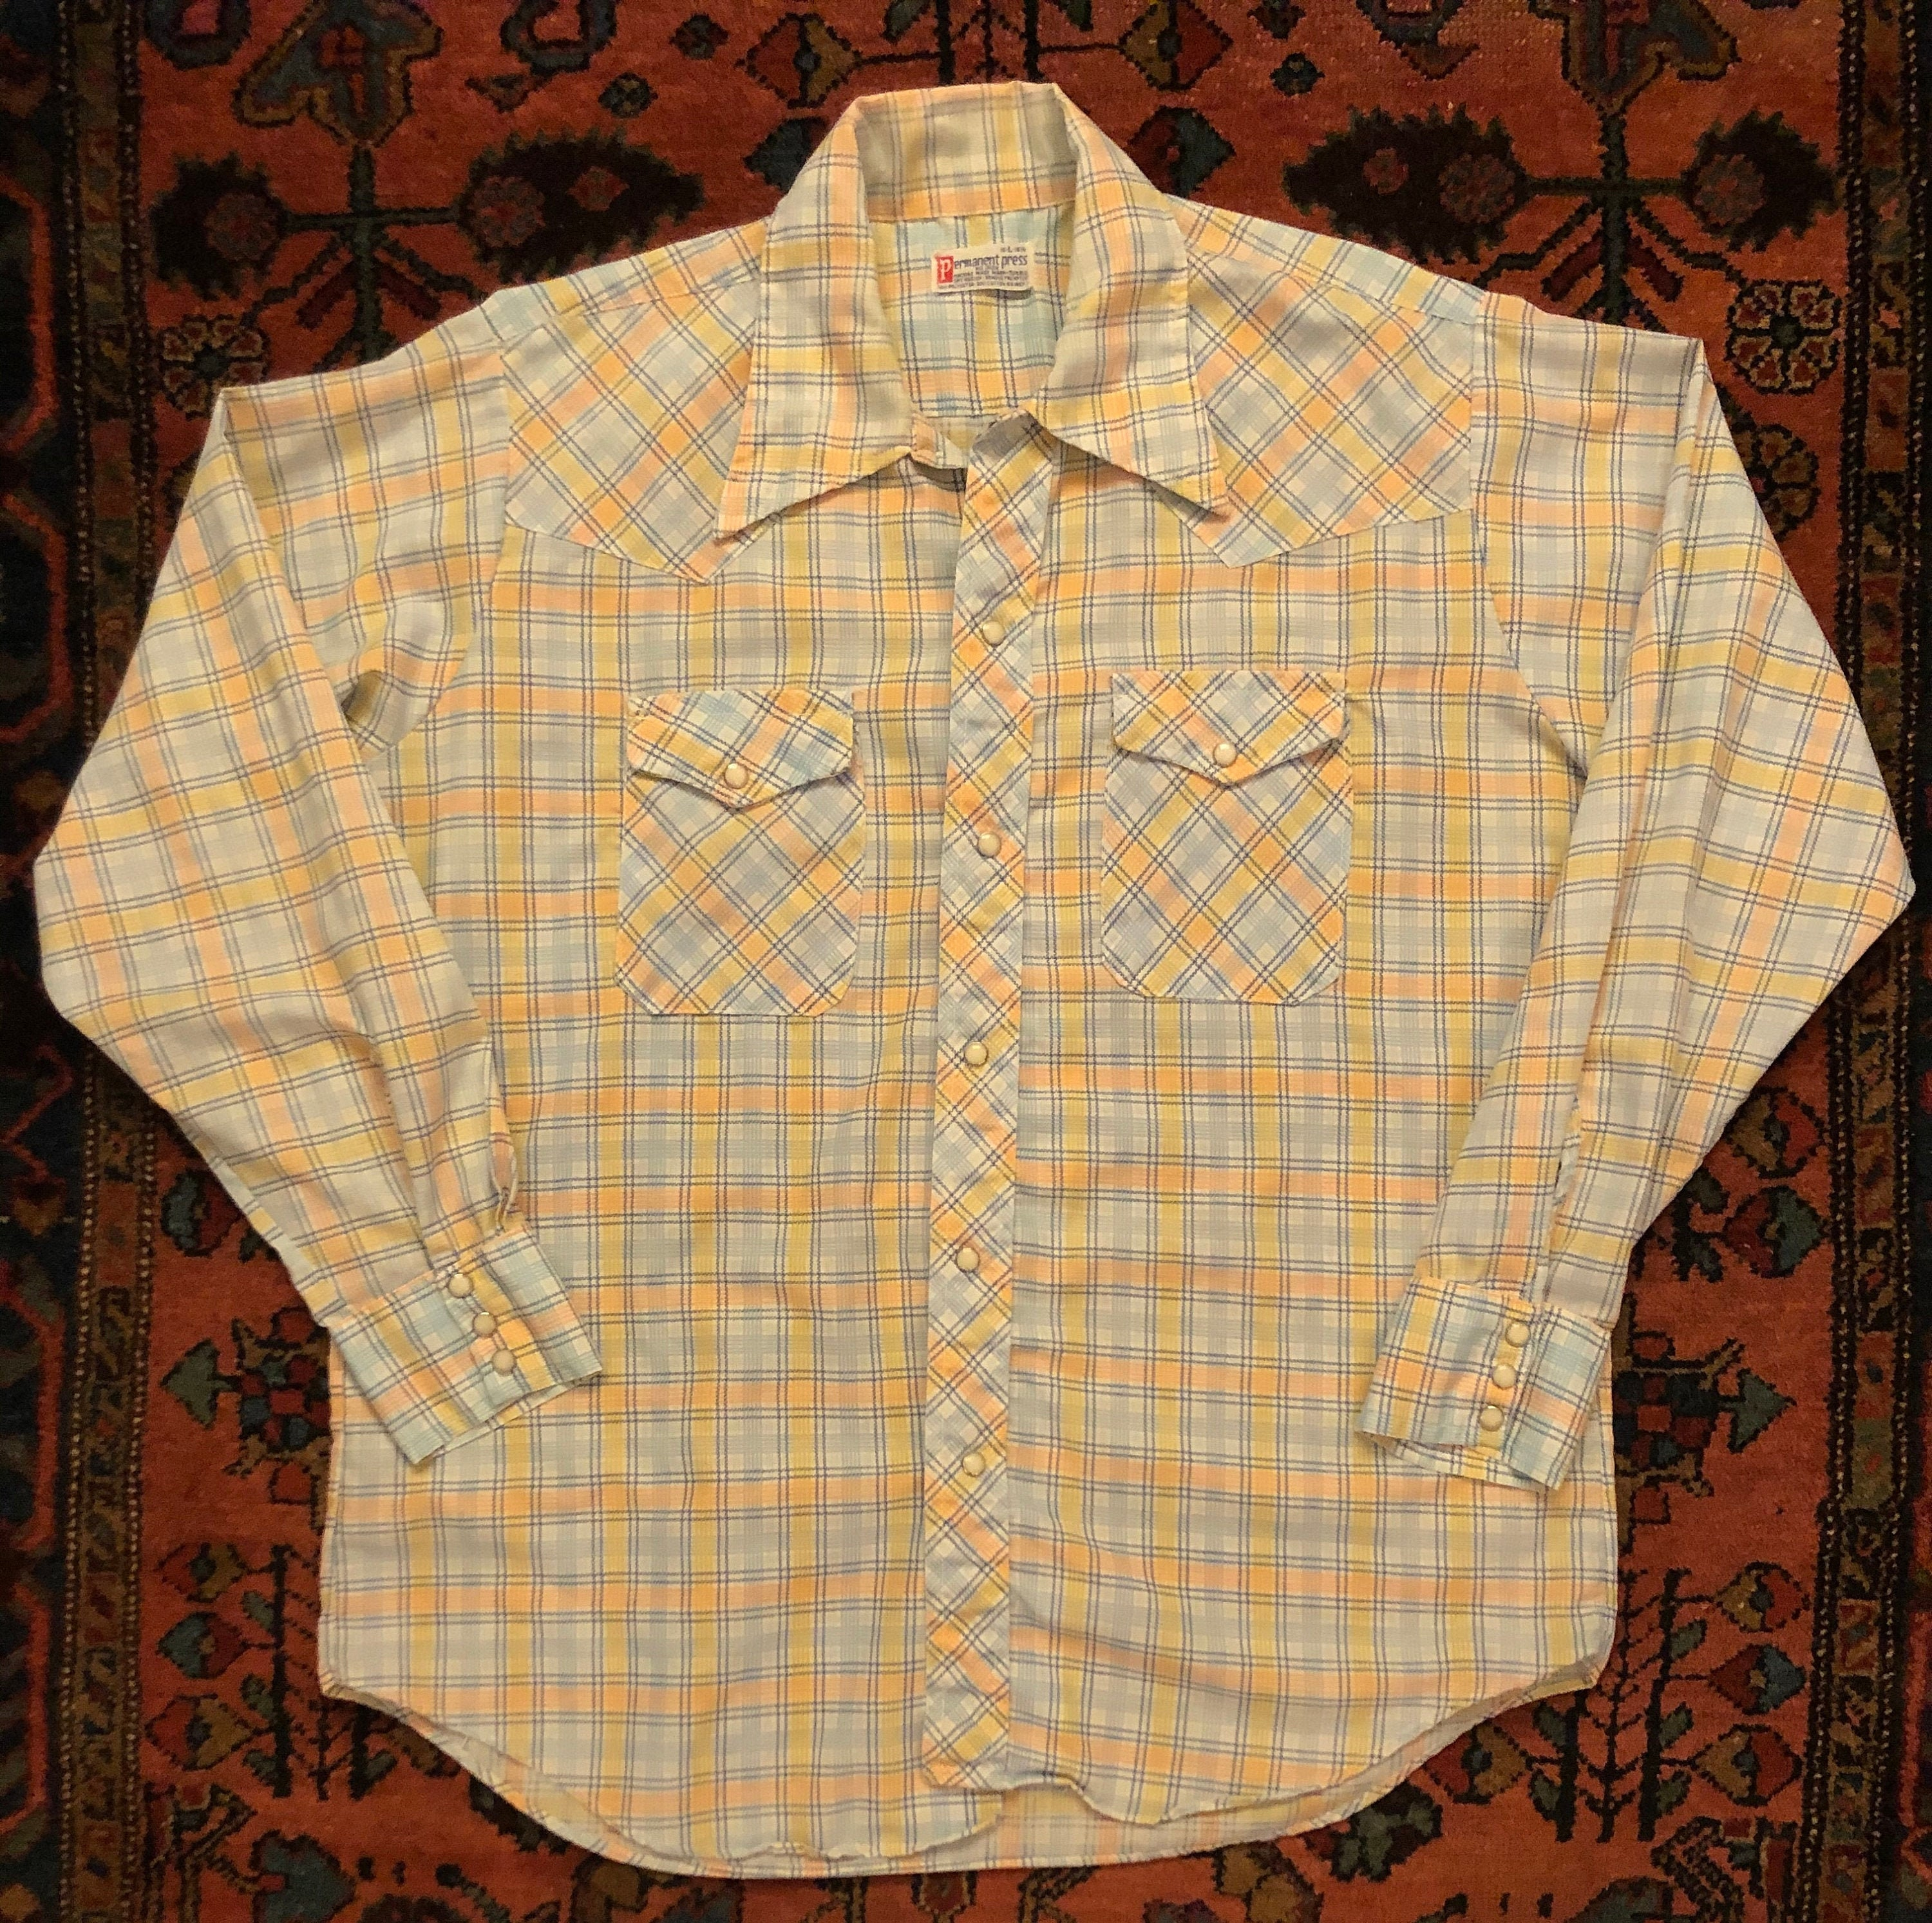 1970s Mens Shirt Styles – Vintage 70s Shirts for Guys Vintage Mens 1970S Yellow  Blue Pearl Snap Western Cowboy Plaid Button Down Shirt $0.00 AT vintagedancer.com